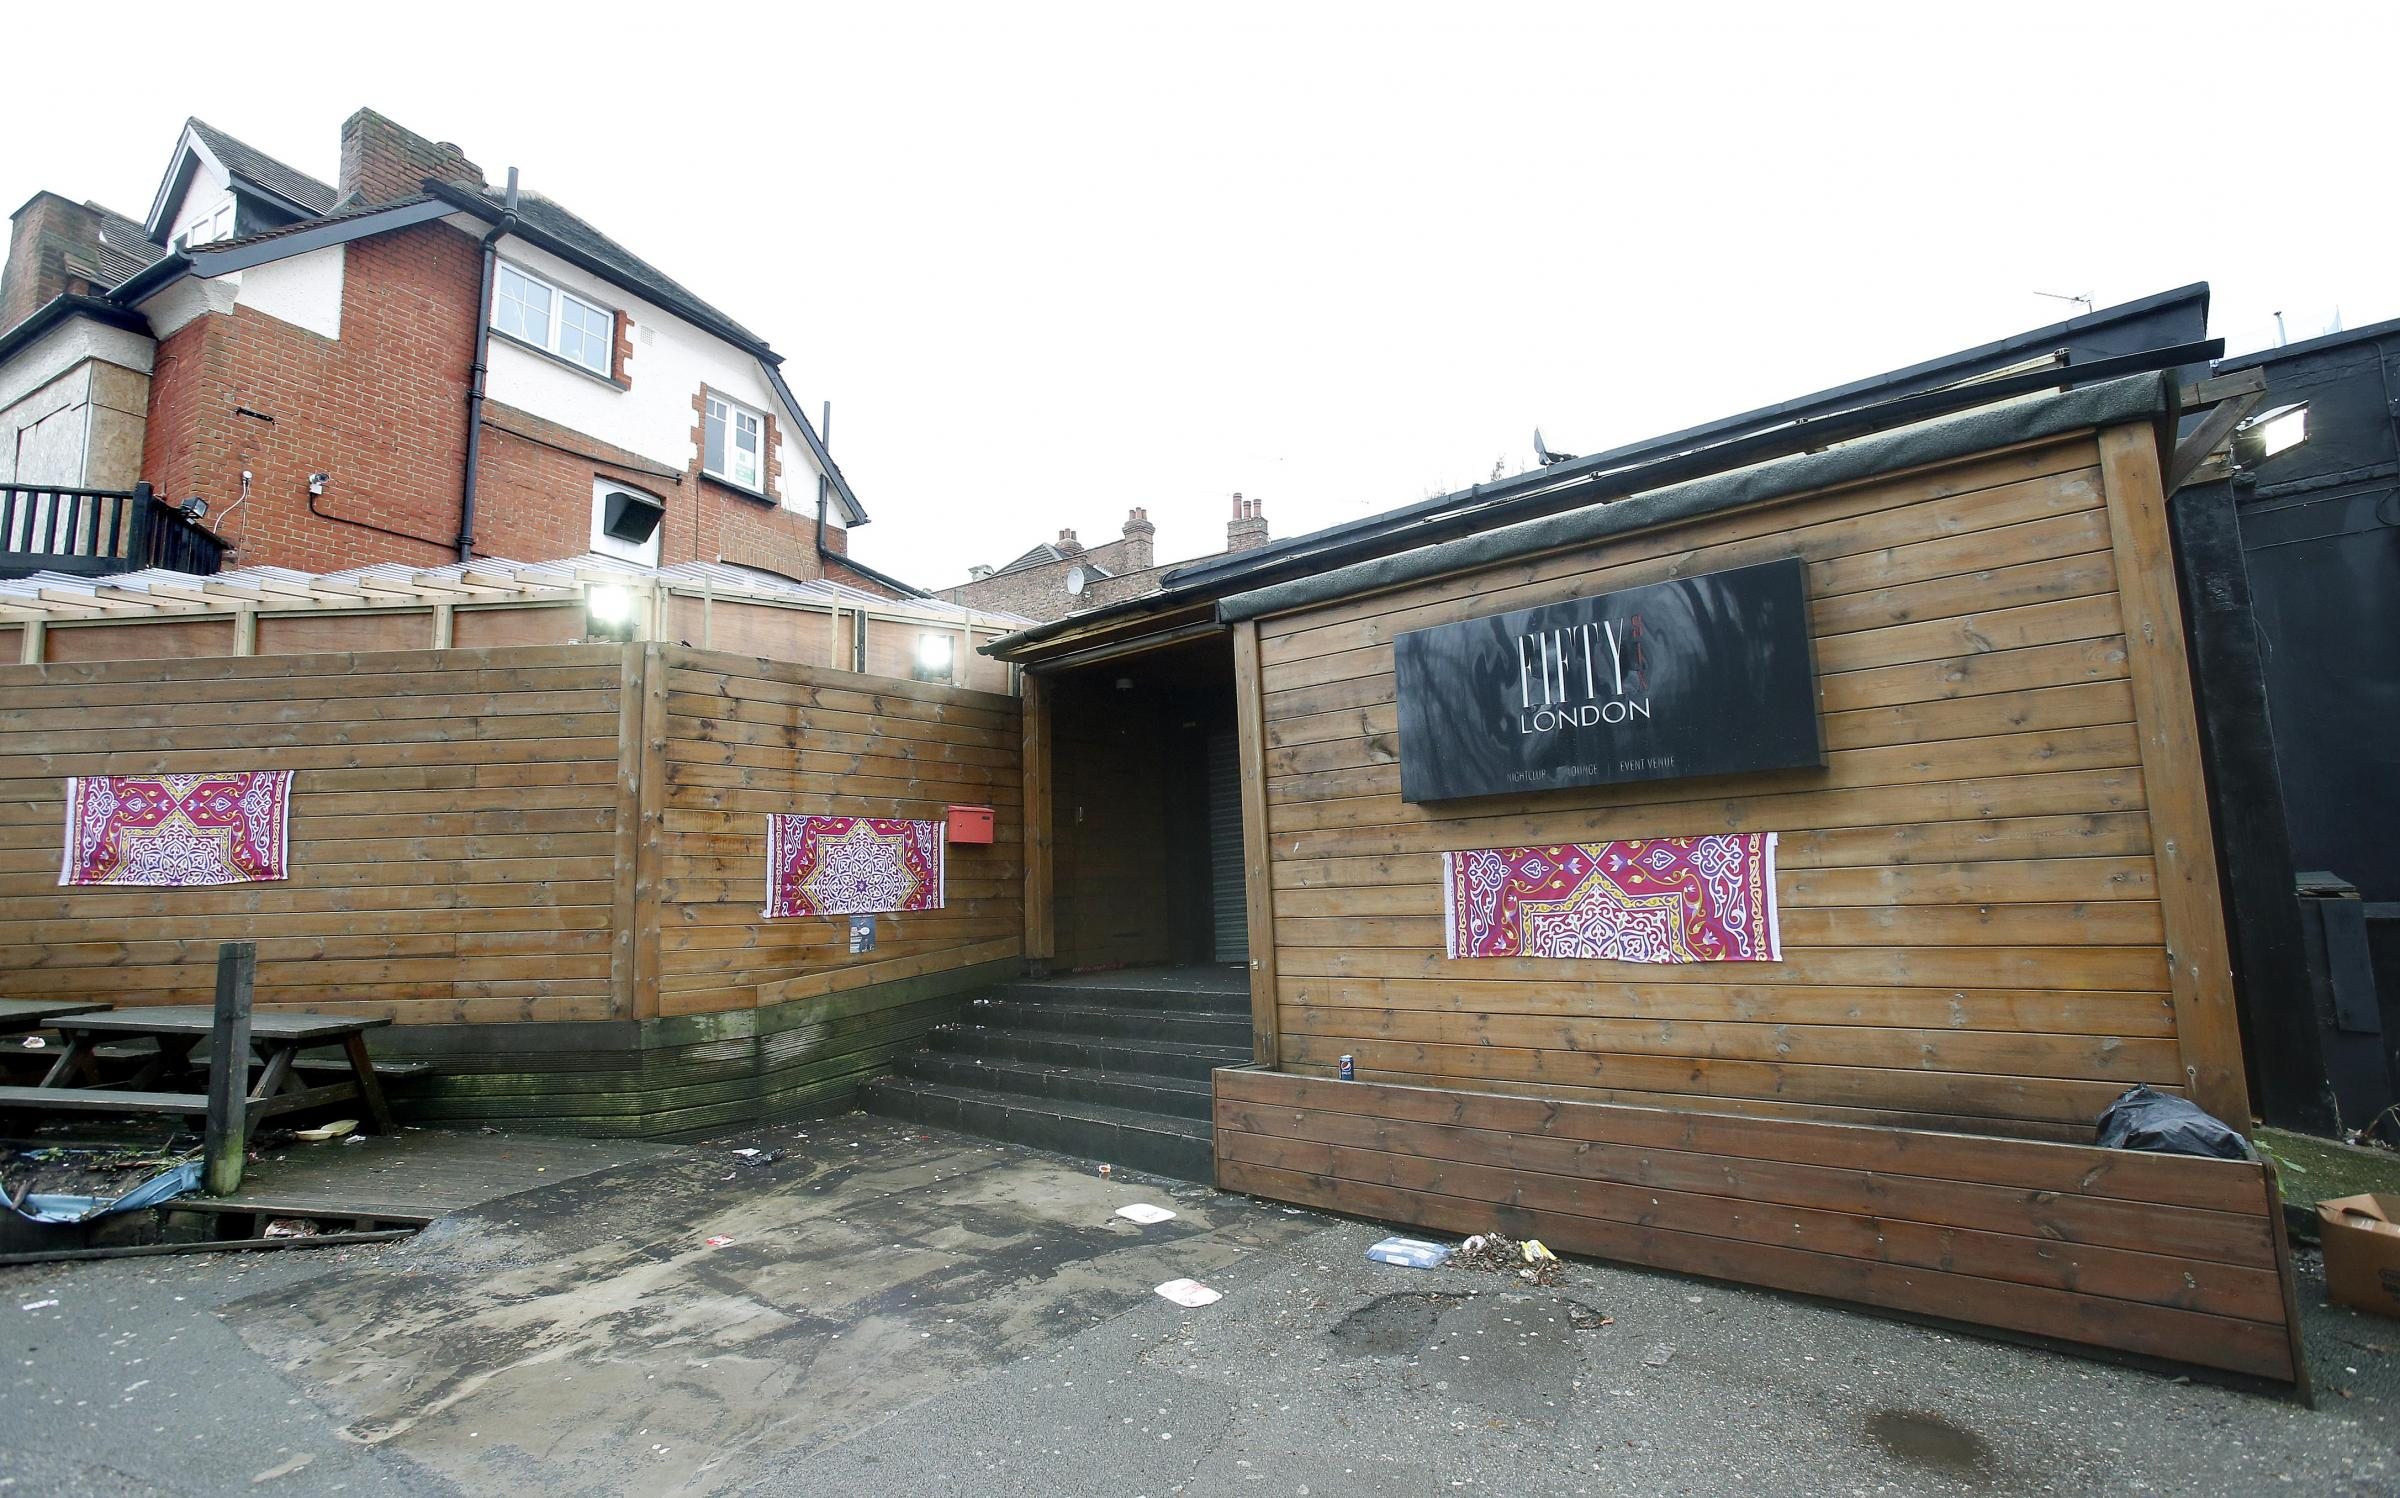 Club 56 in Muswell Hill had its licence revoked after a series of serious brawls happened there and might have to close for good